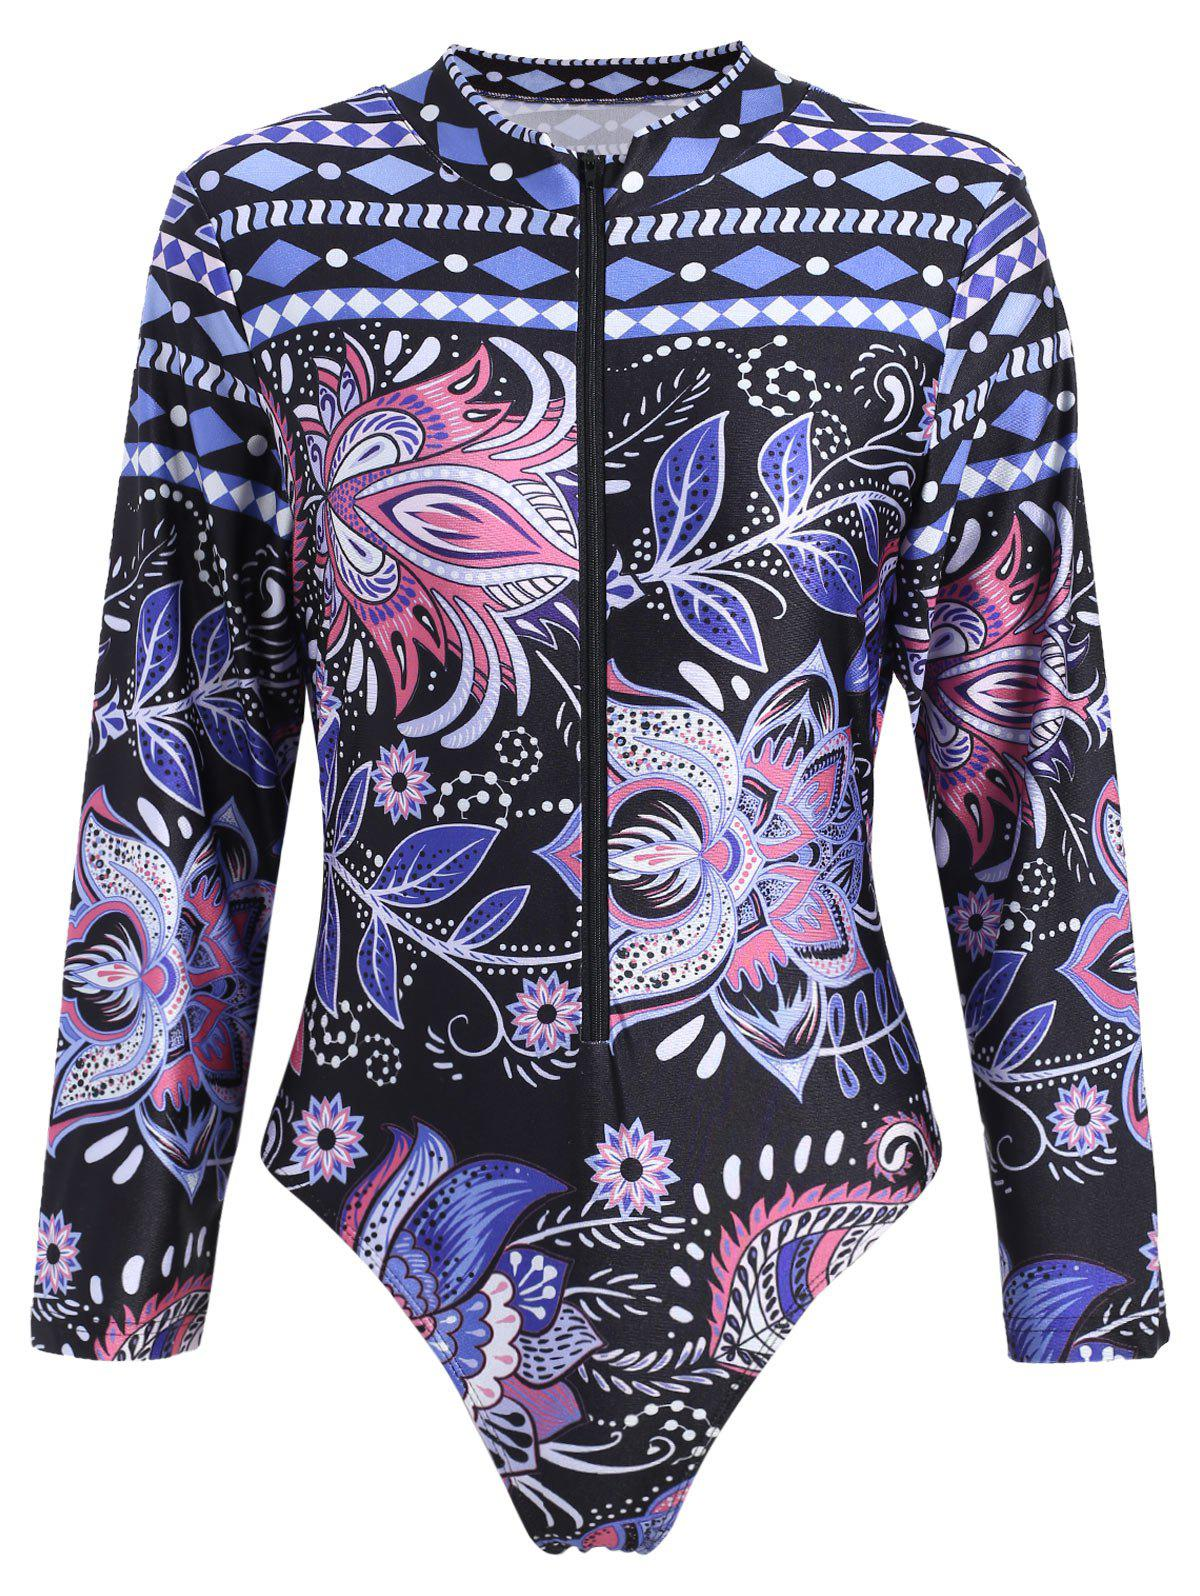 Long Sleeve Sport Plus Size SwimwearWOMEN<br><br>Size: 3XL; Color: COLORMIX; Gender: For Women; Swimwear Type: One Piece; Material: Polyester,Spandex; Support Type: Wire Free; Neckline: High Neck; Pattern Type: Floral; Waist: Natural; Elasticity: Micro-elastic; Weight: 0.2500kg; Package Contents: 1 x Swimwear;